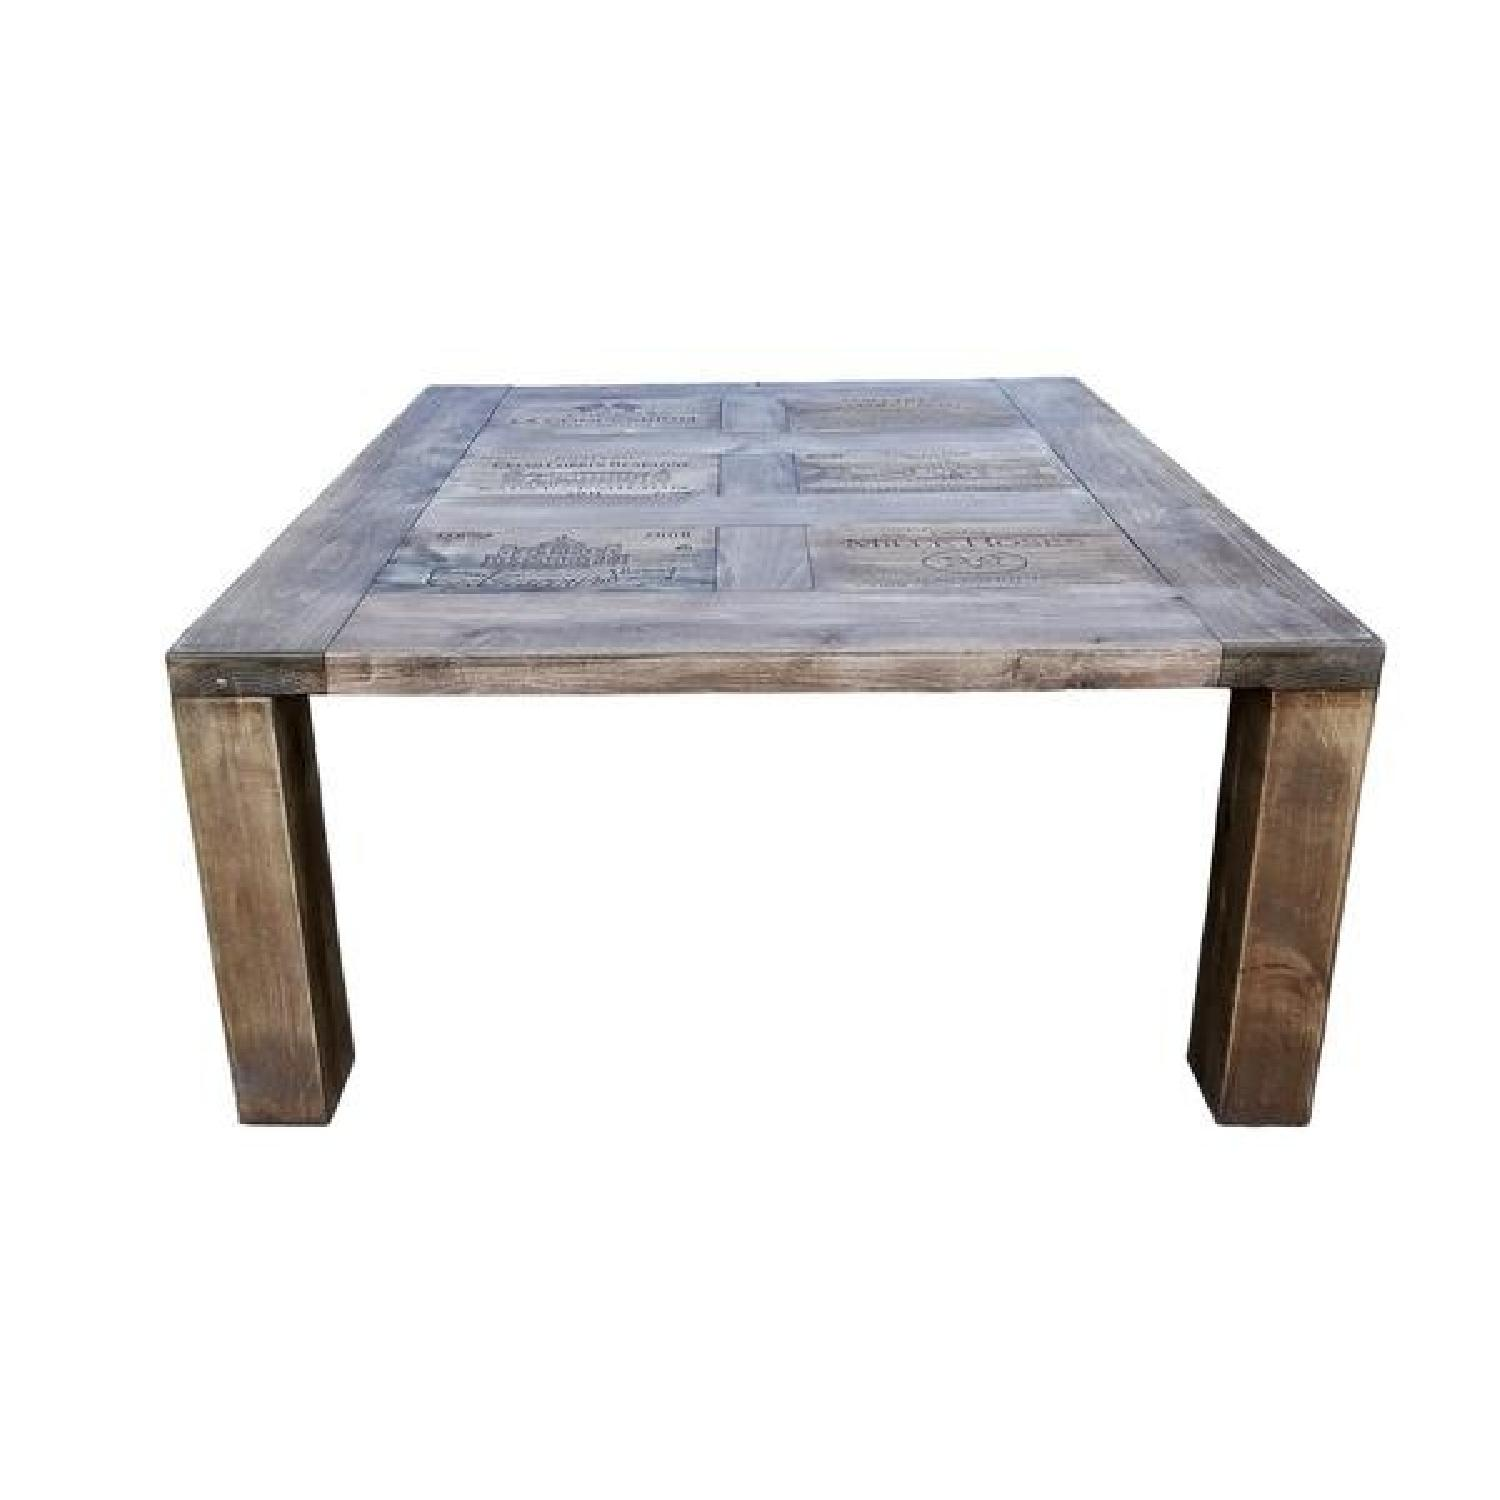 Handmade Pine Wood French Wine Crates Rustic Coffee Table